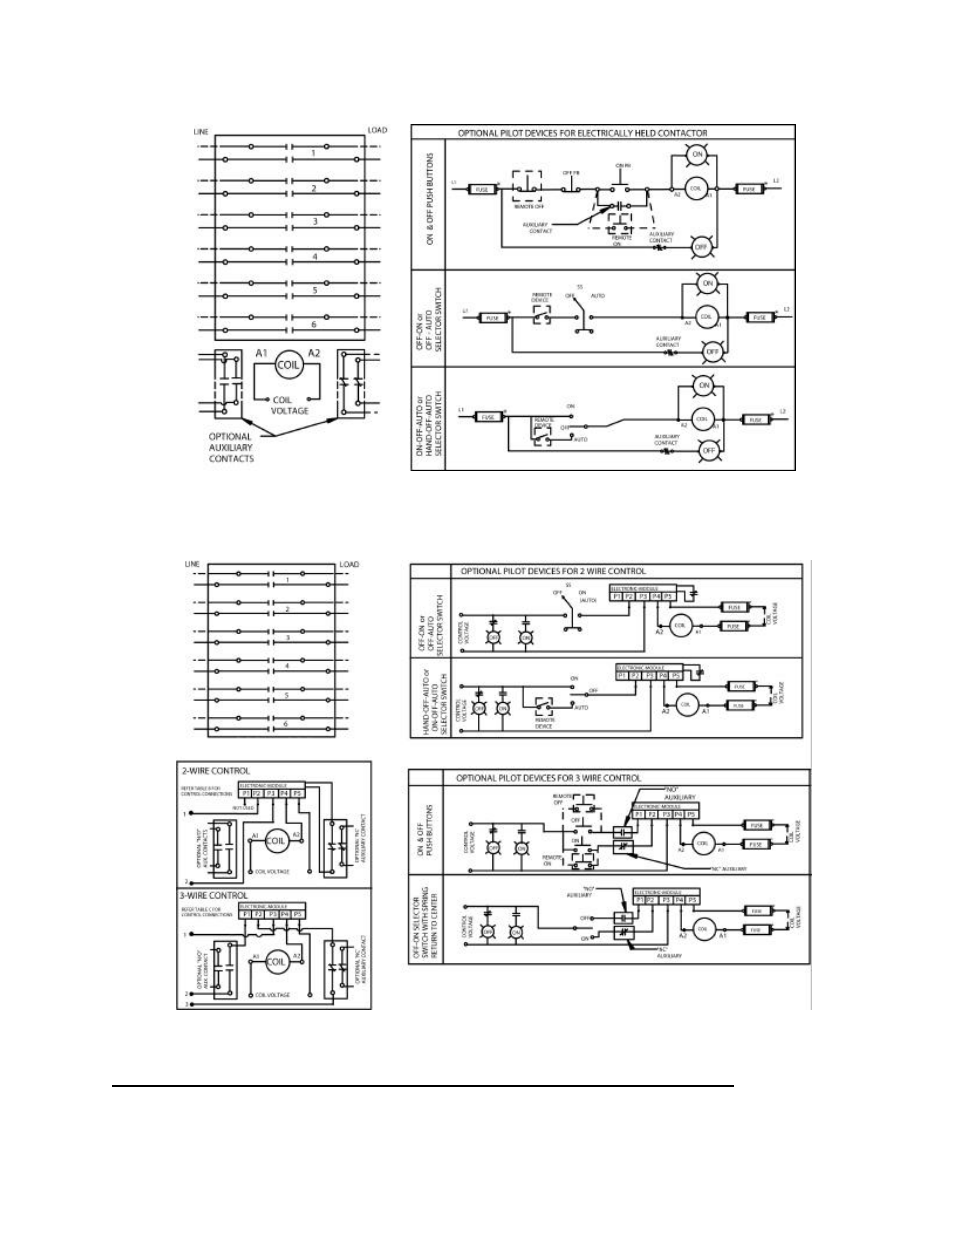 ge industrial solutions cr460 lighting contactor series user manual Single Phase Motor Contactor Wiring Diagrams